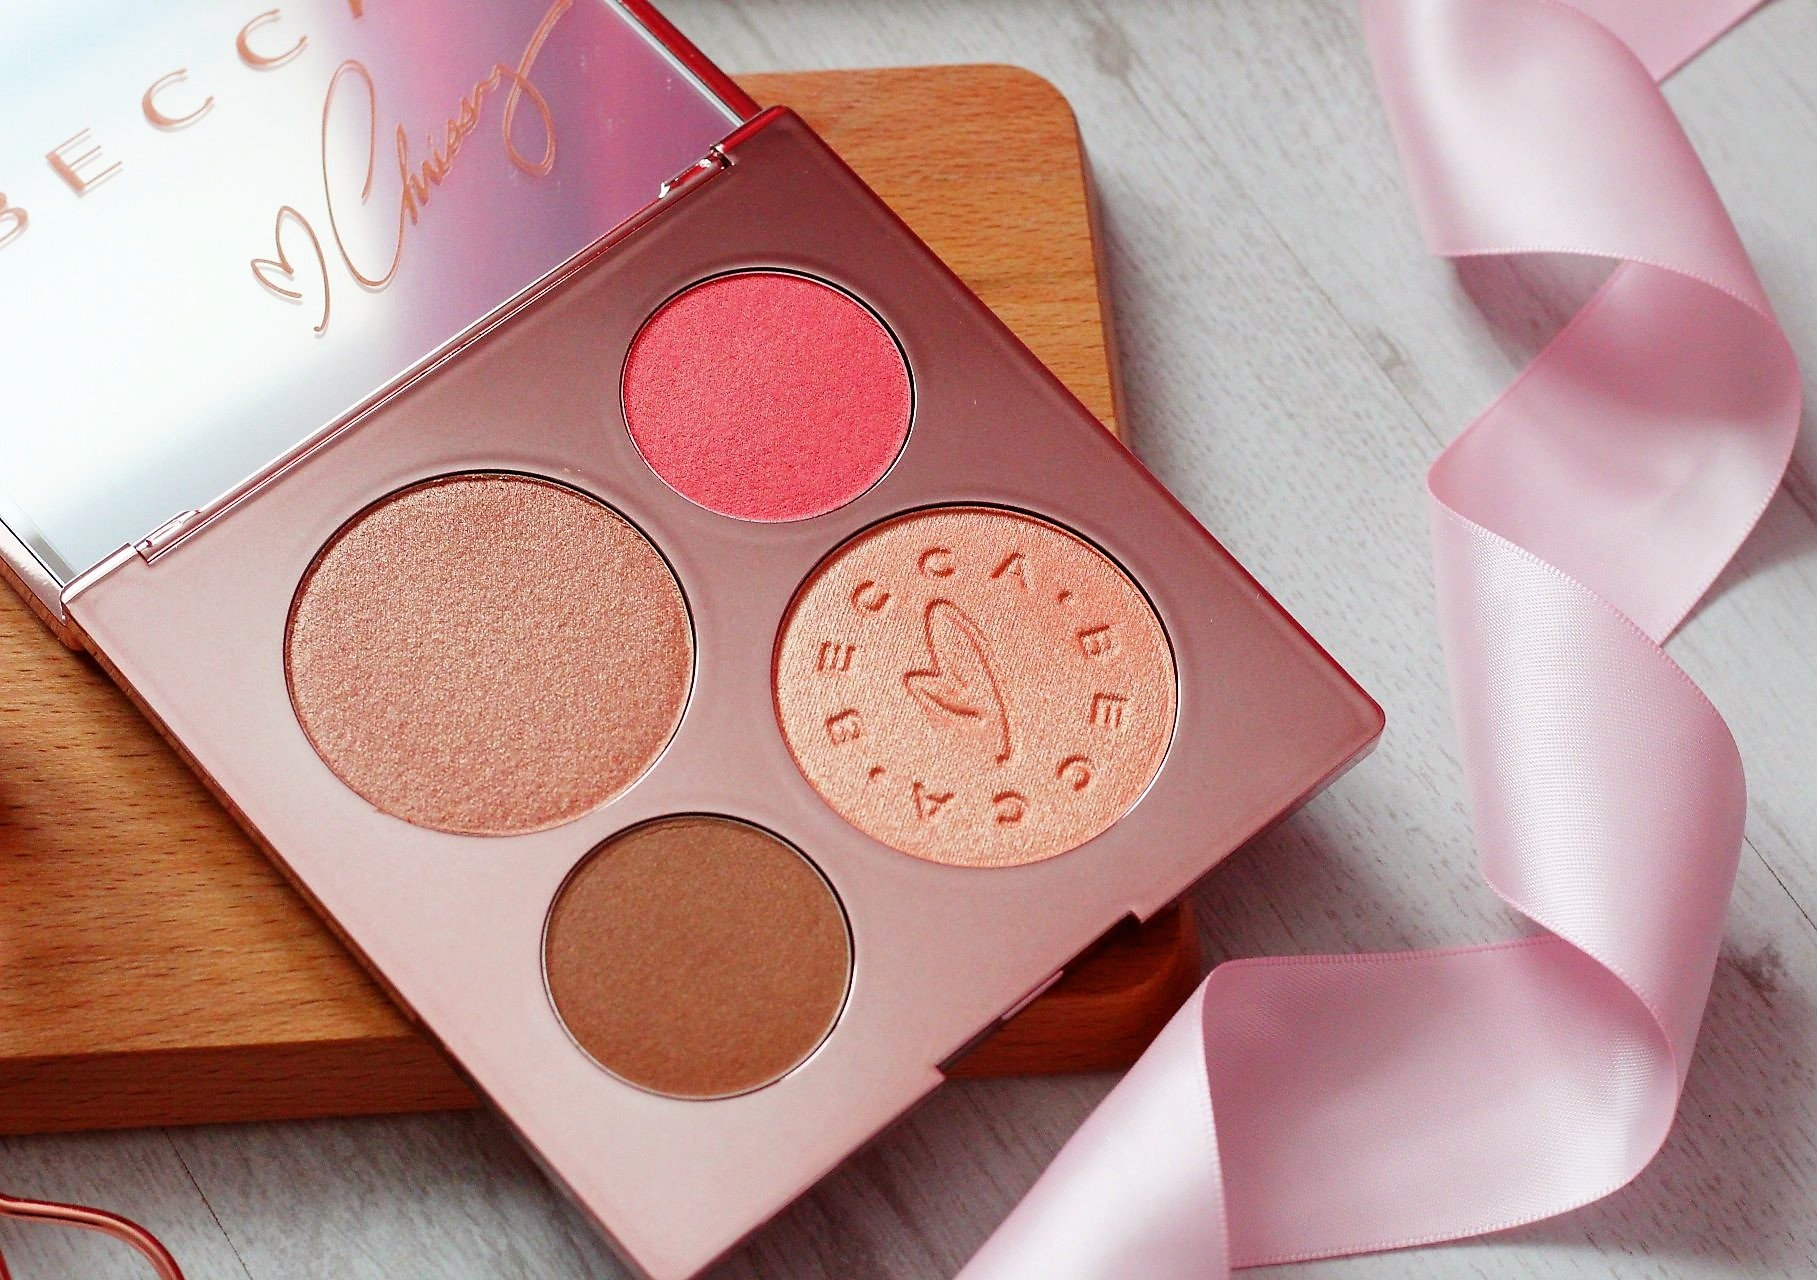 Becca x Chrissy Teigan Glow Face Palette Review and Swatches 3 (2).jpeg